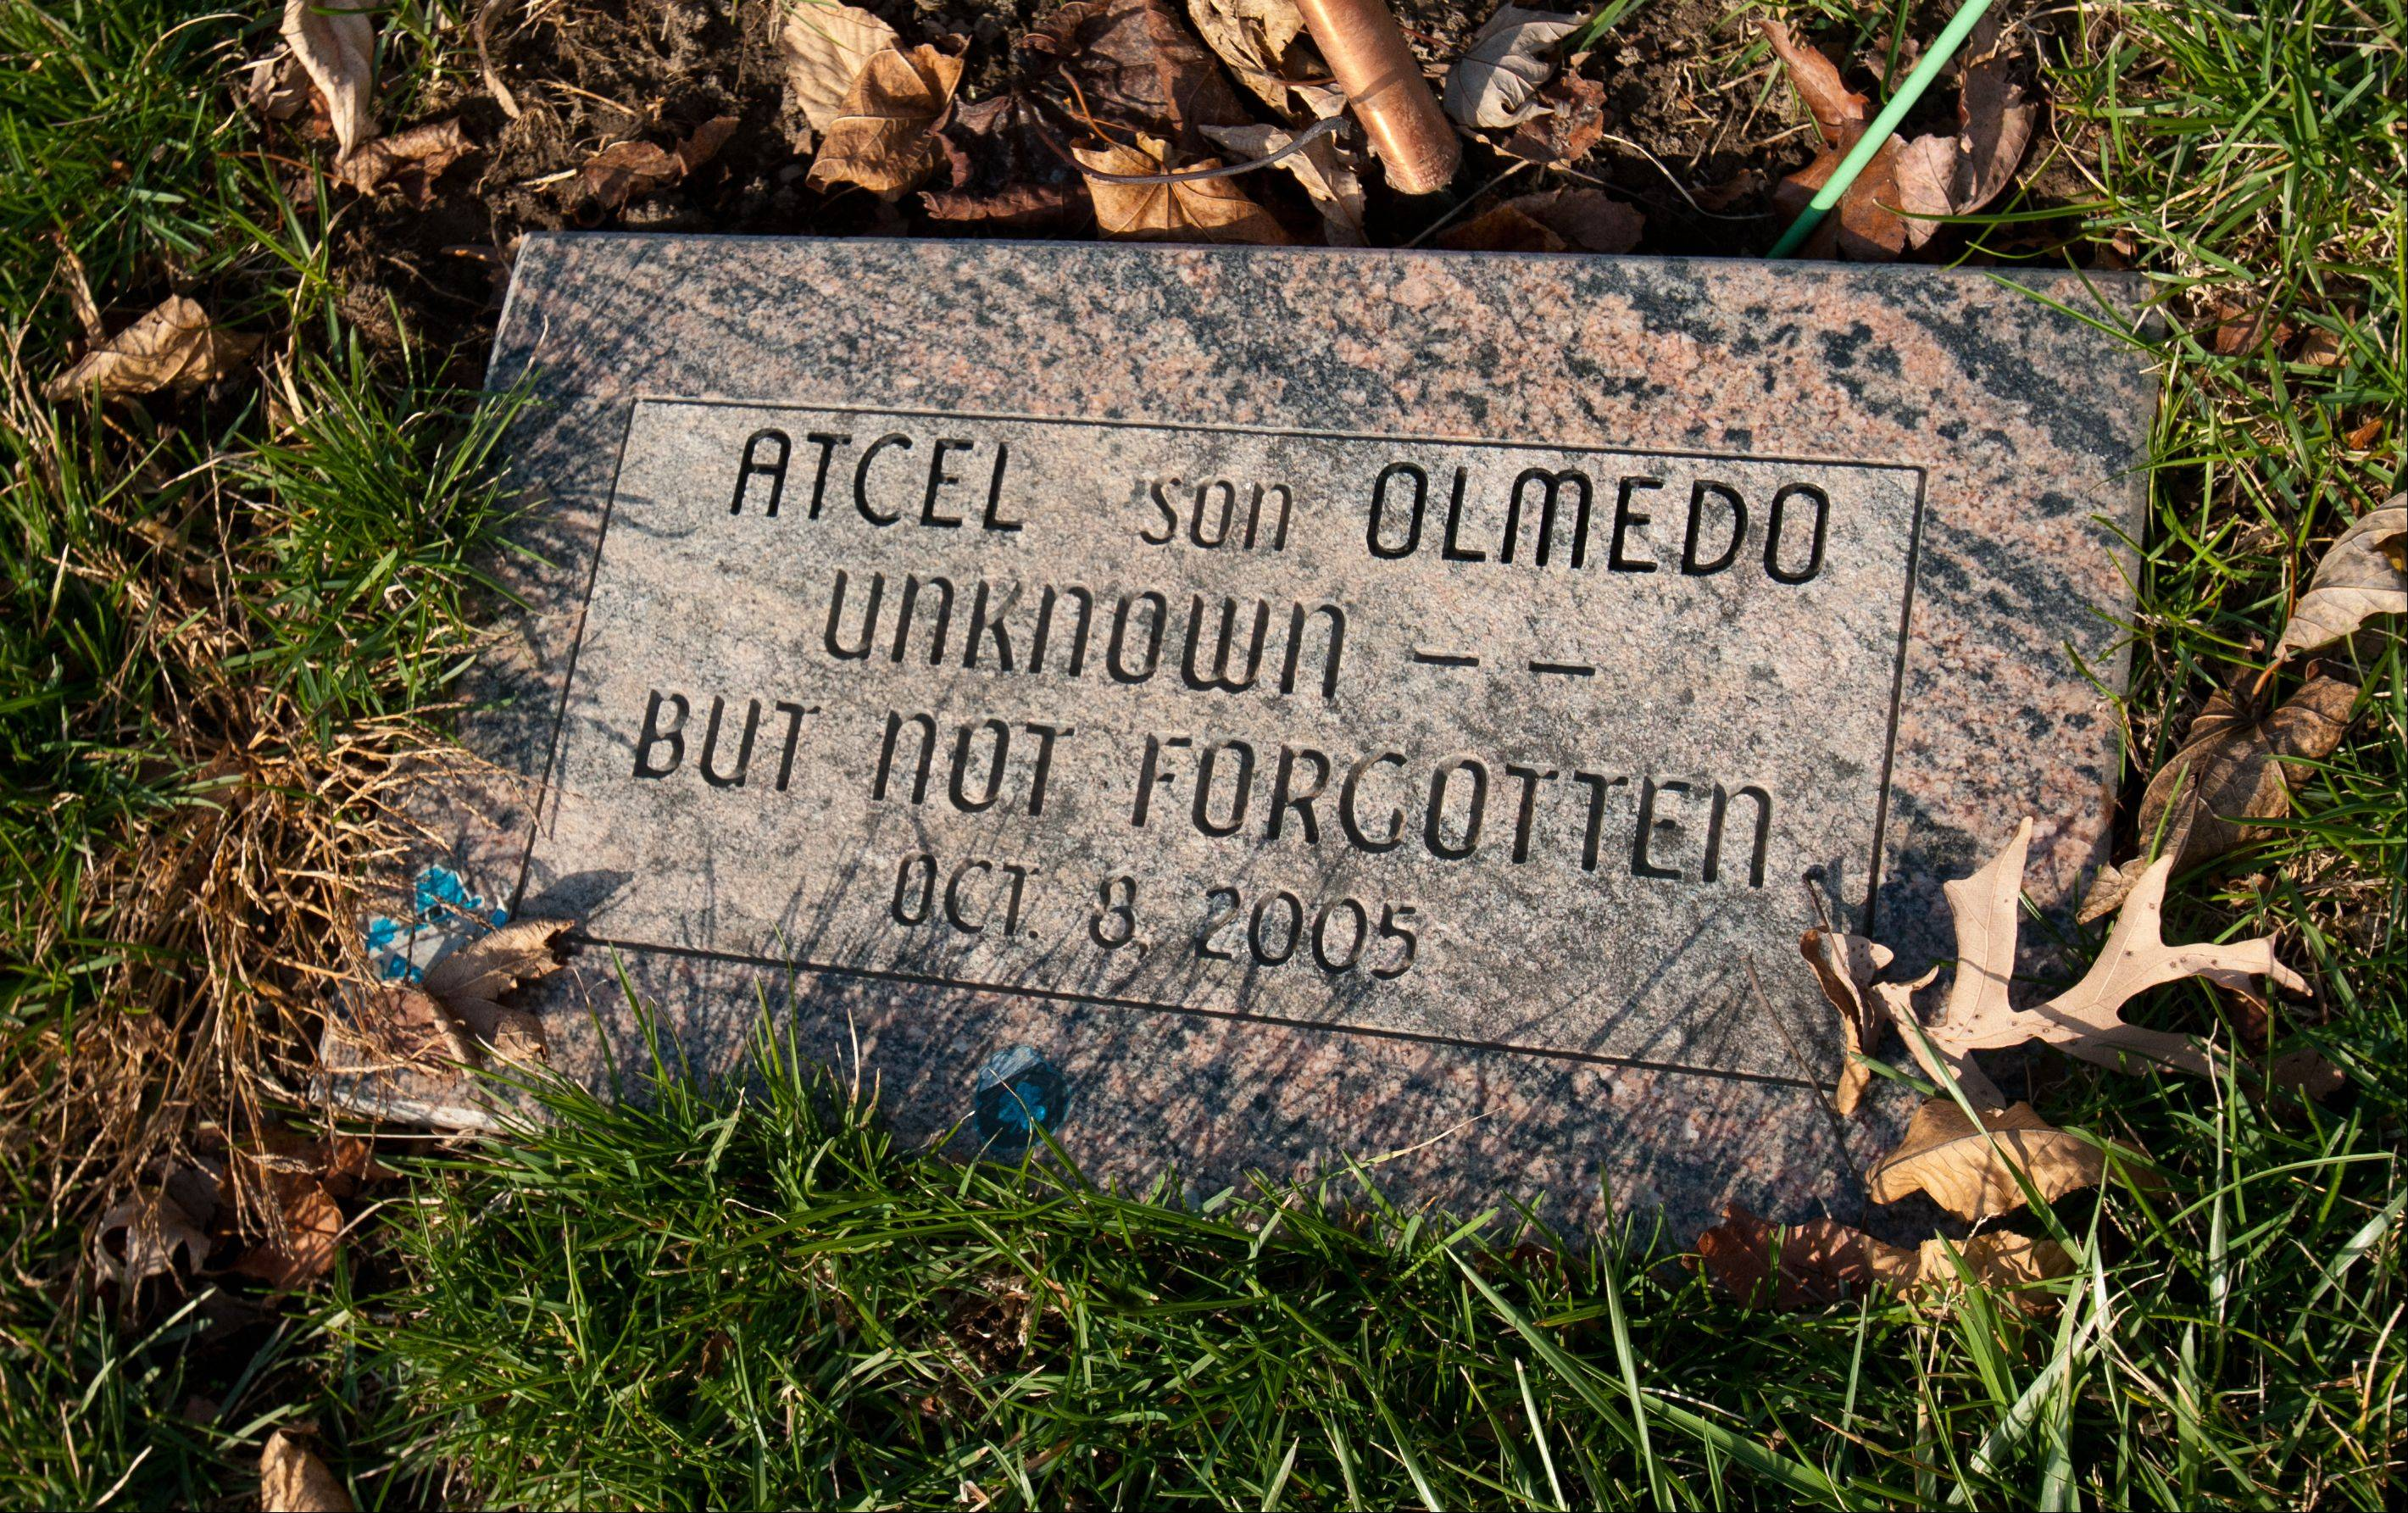 A previously nameless boy found dead seven years ago in Naperville Township has been identified as Atcel Olmedo. The boy was buried in Wheaton�s Assumption Cemetery.